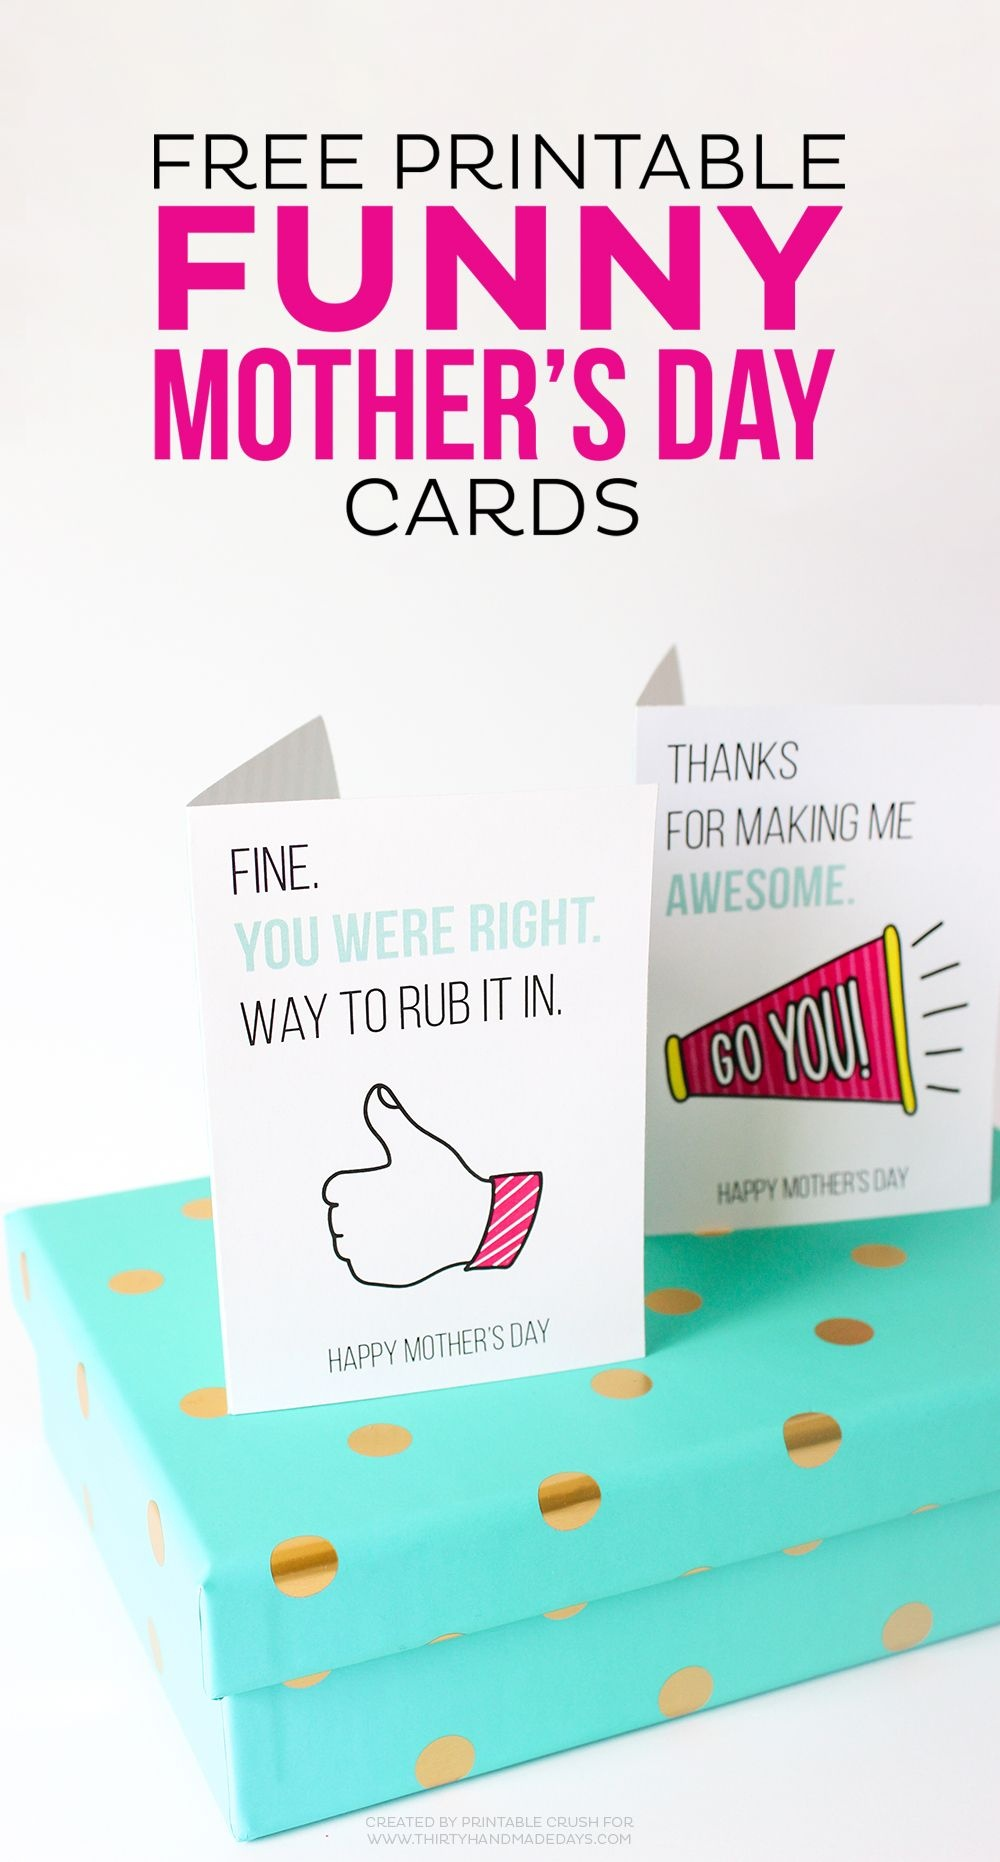 Printable Funny Mother's Day Cards | All Things Printable | Mothers - Free Printable Funny Mother's Day Cards